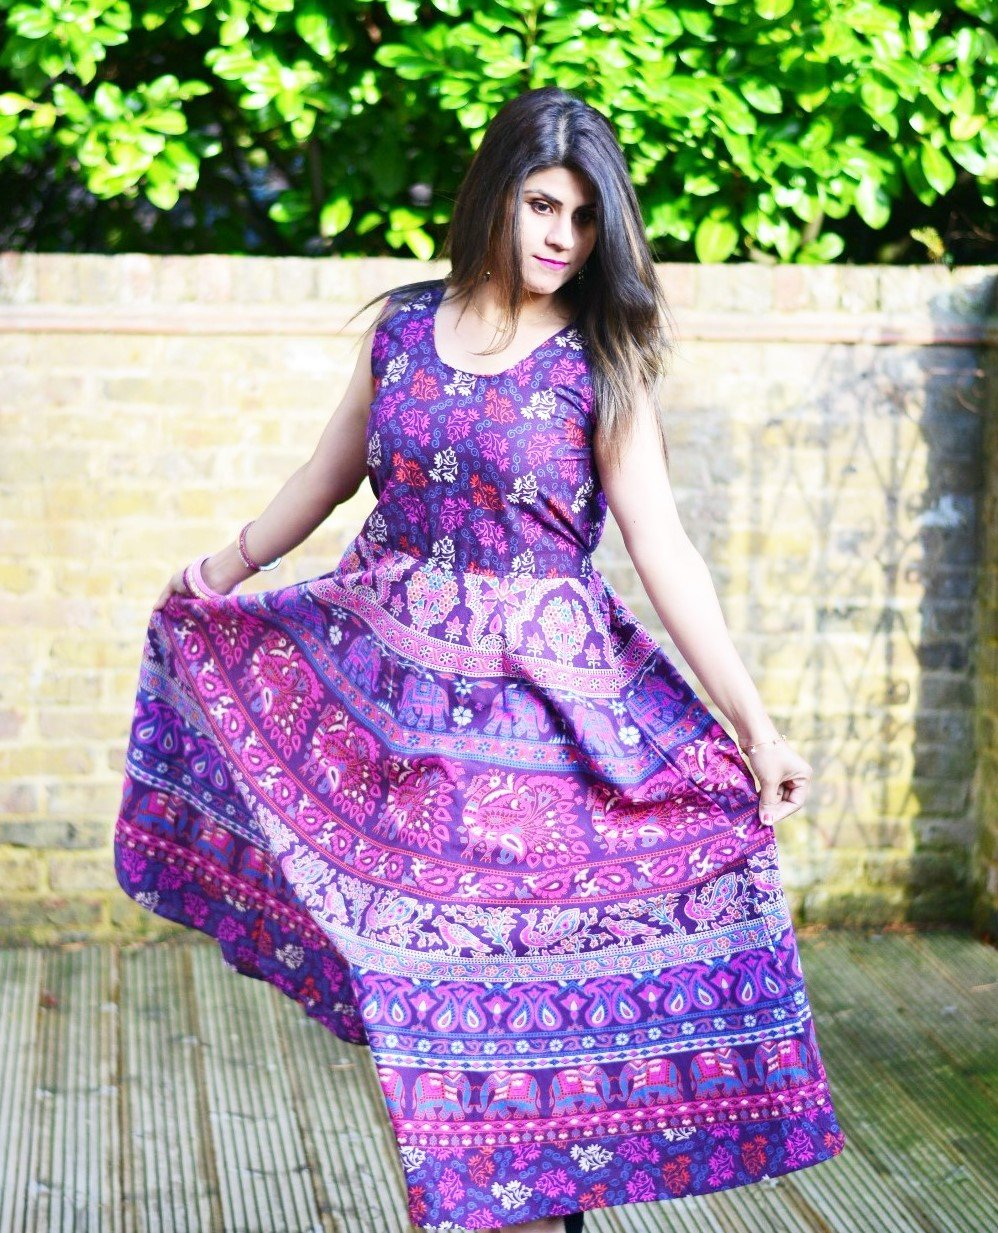 Nature Print Handmade Maxi Dress